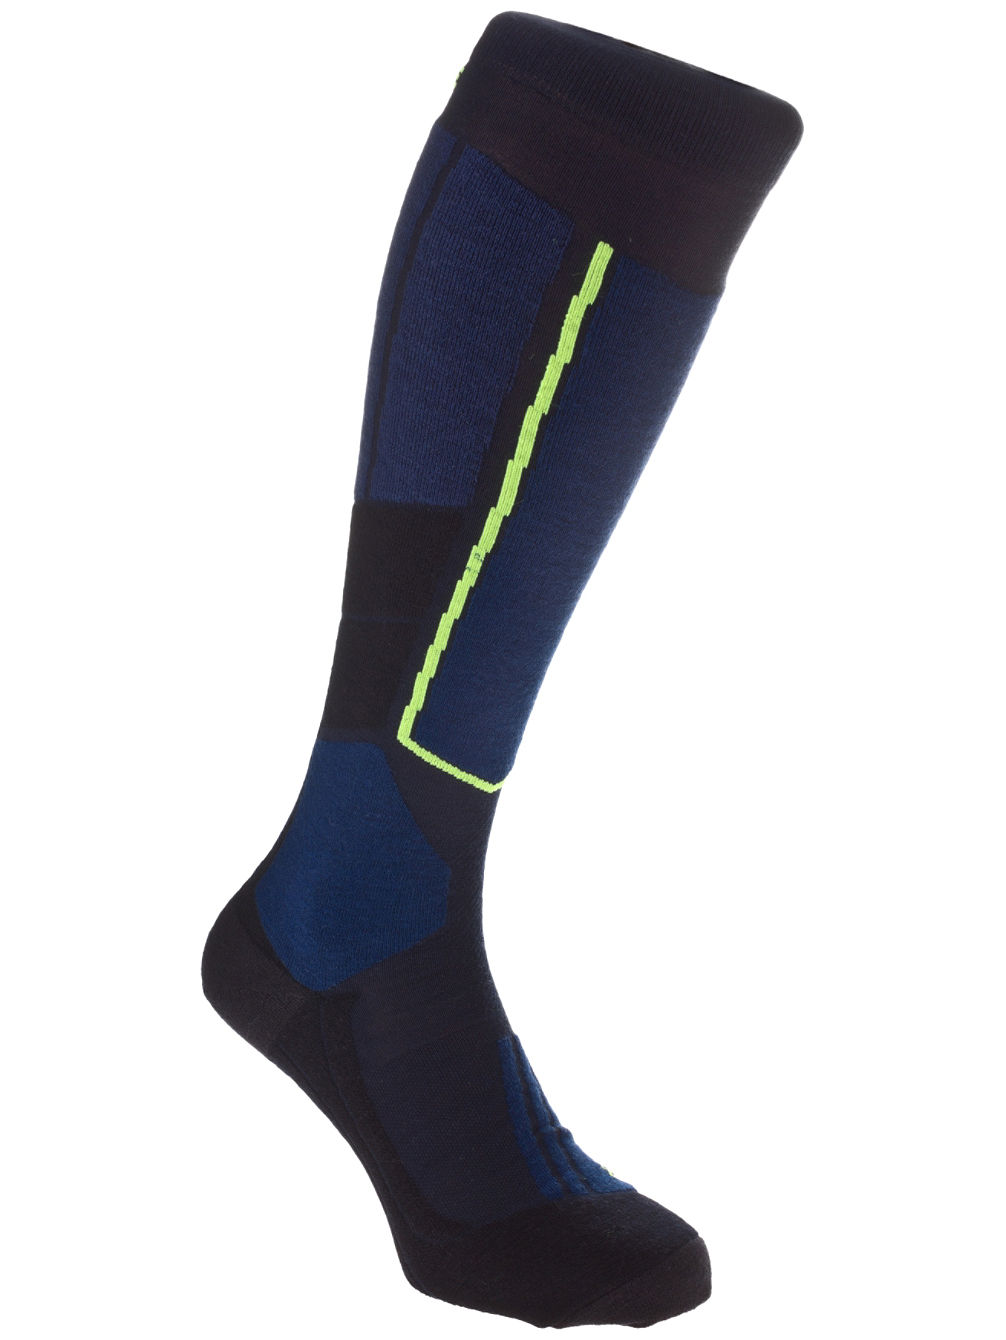 ST4 Tech Socks